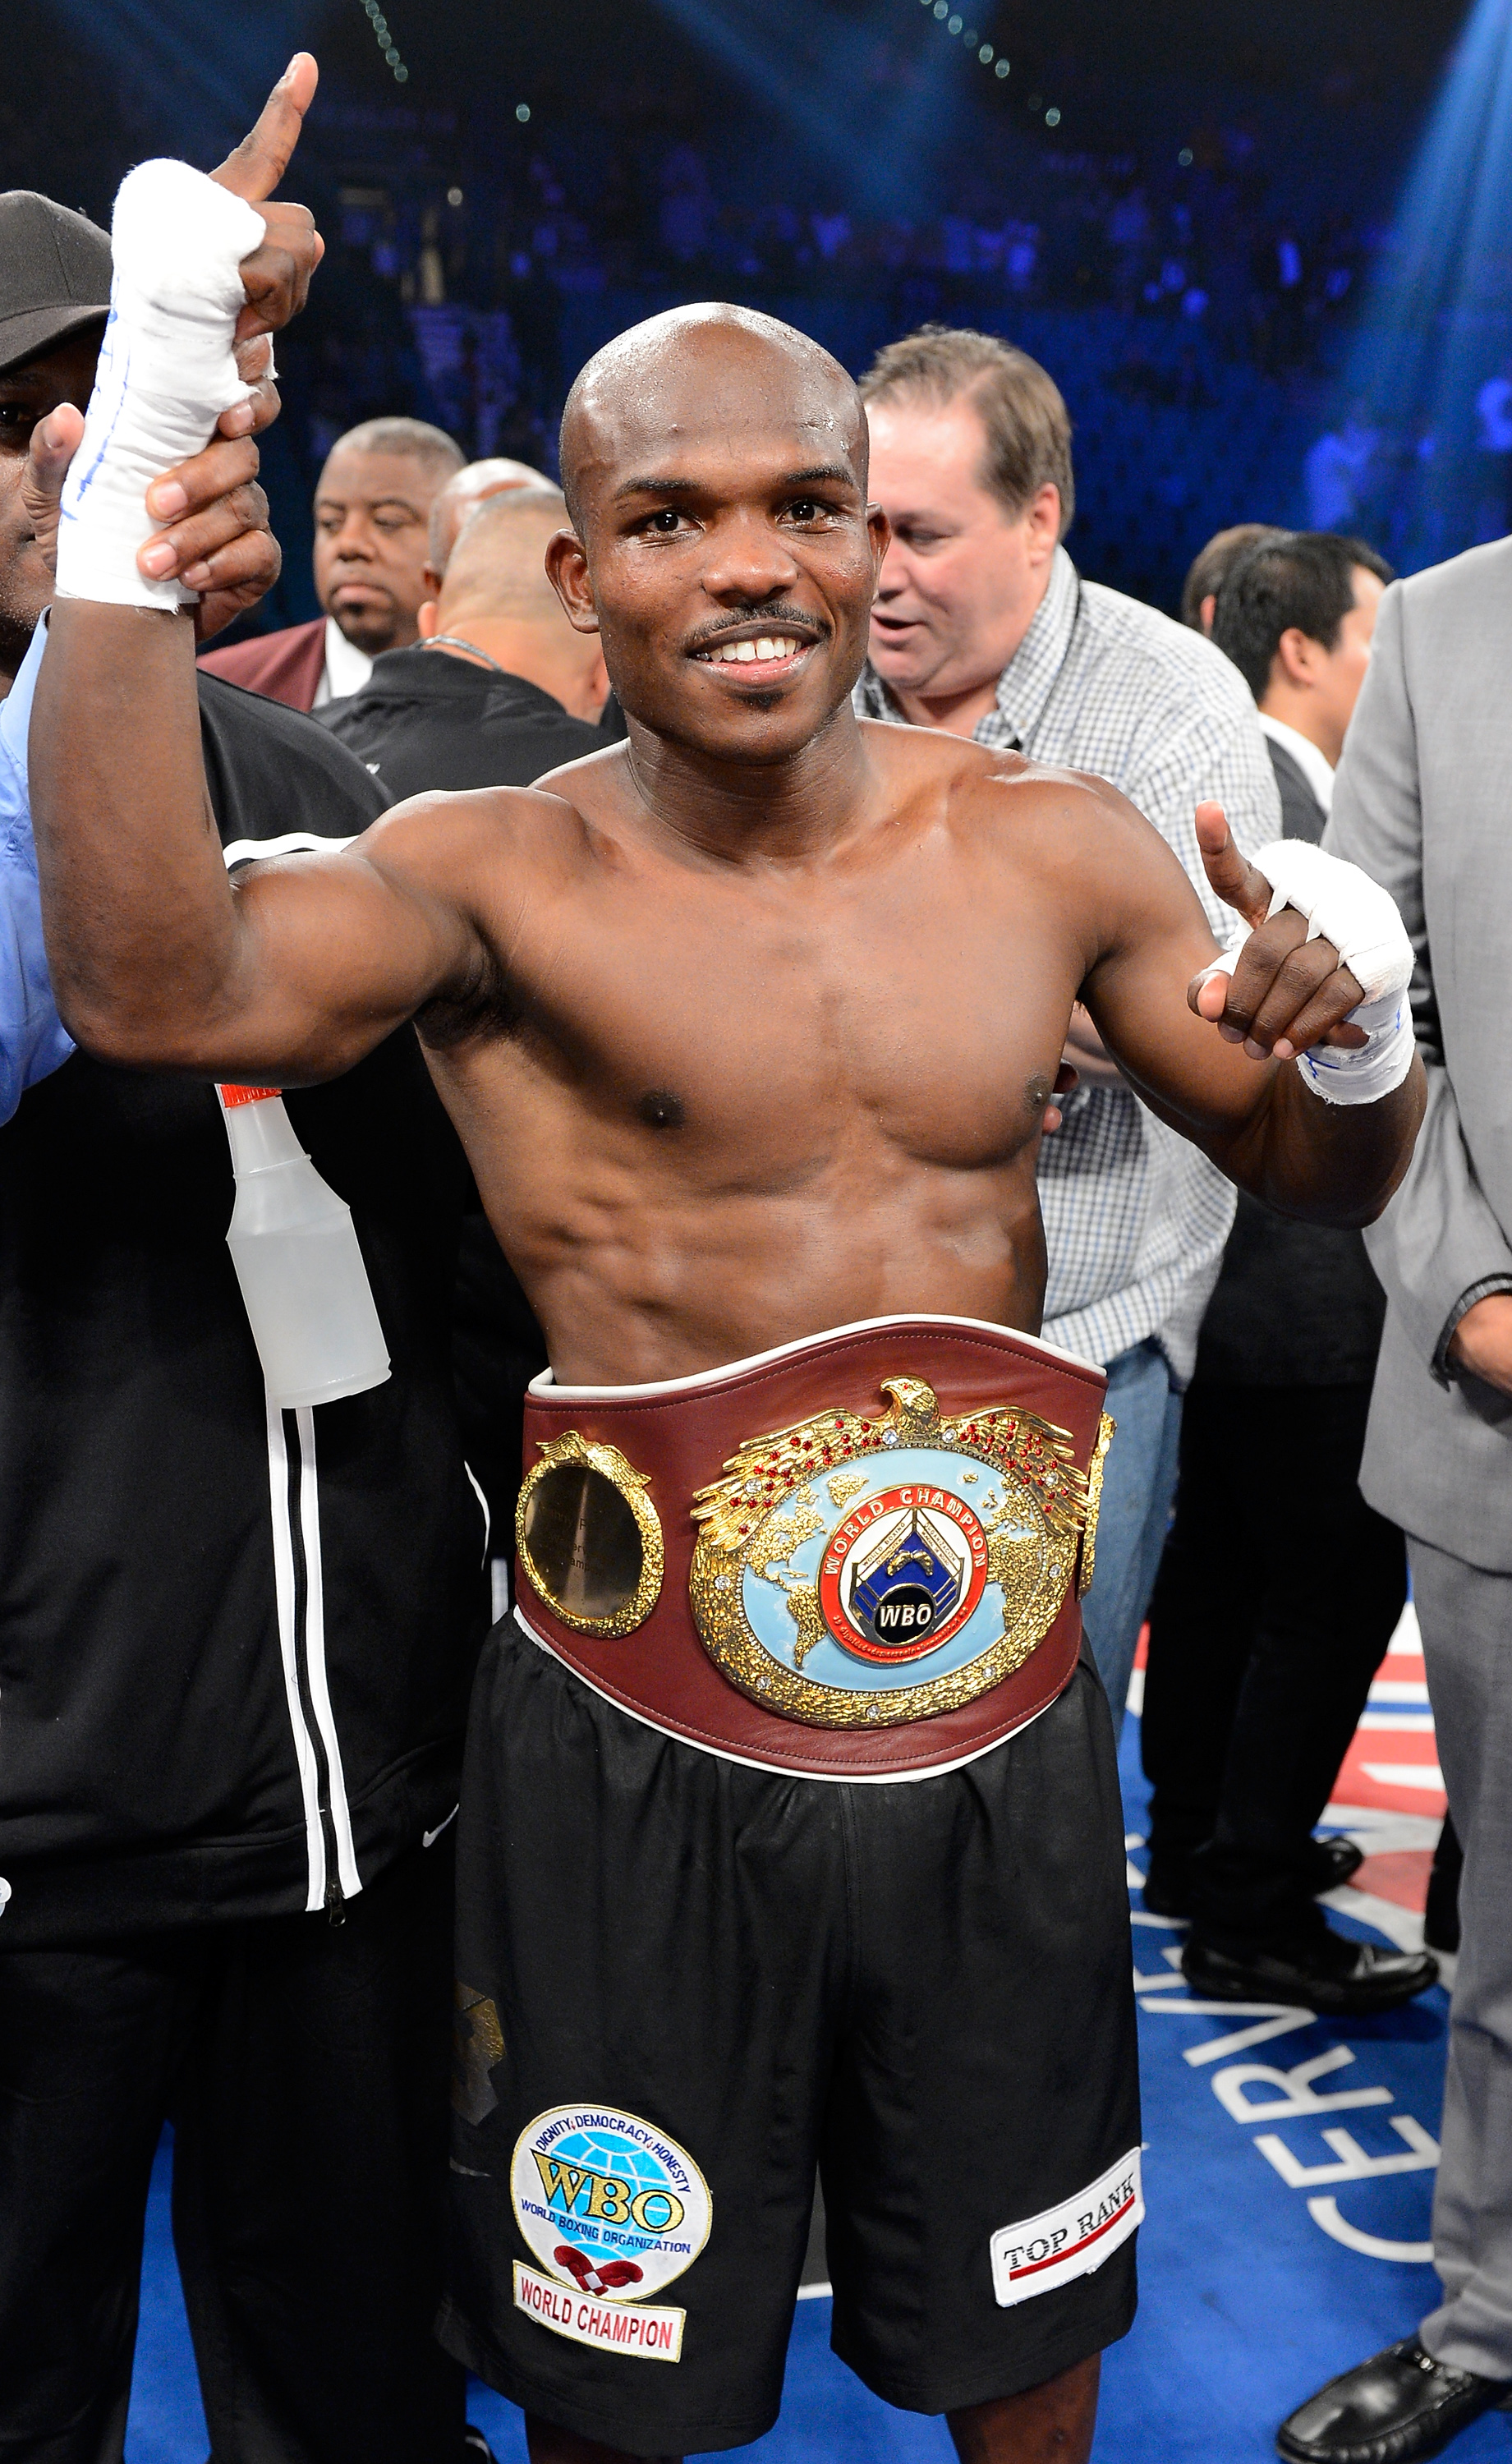 Timothy Bradley may have a win over Manny Pacquiao but his career still lacks traction. (Getty Images)